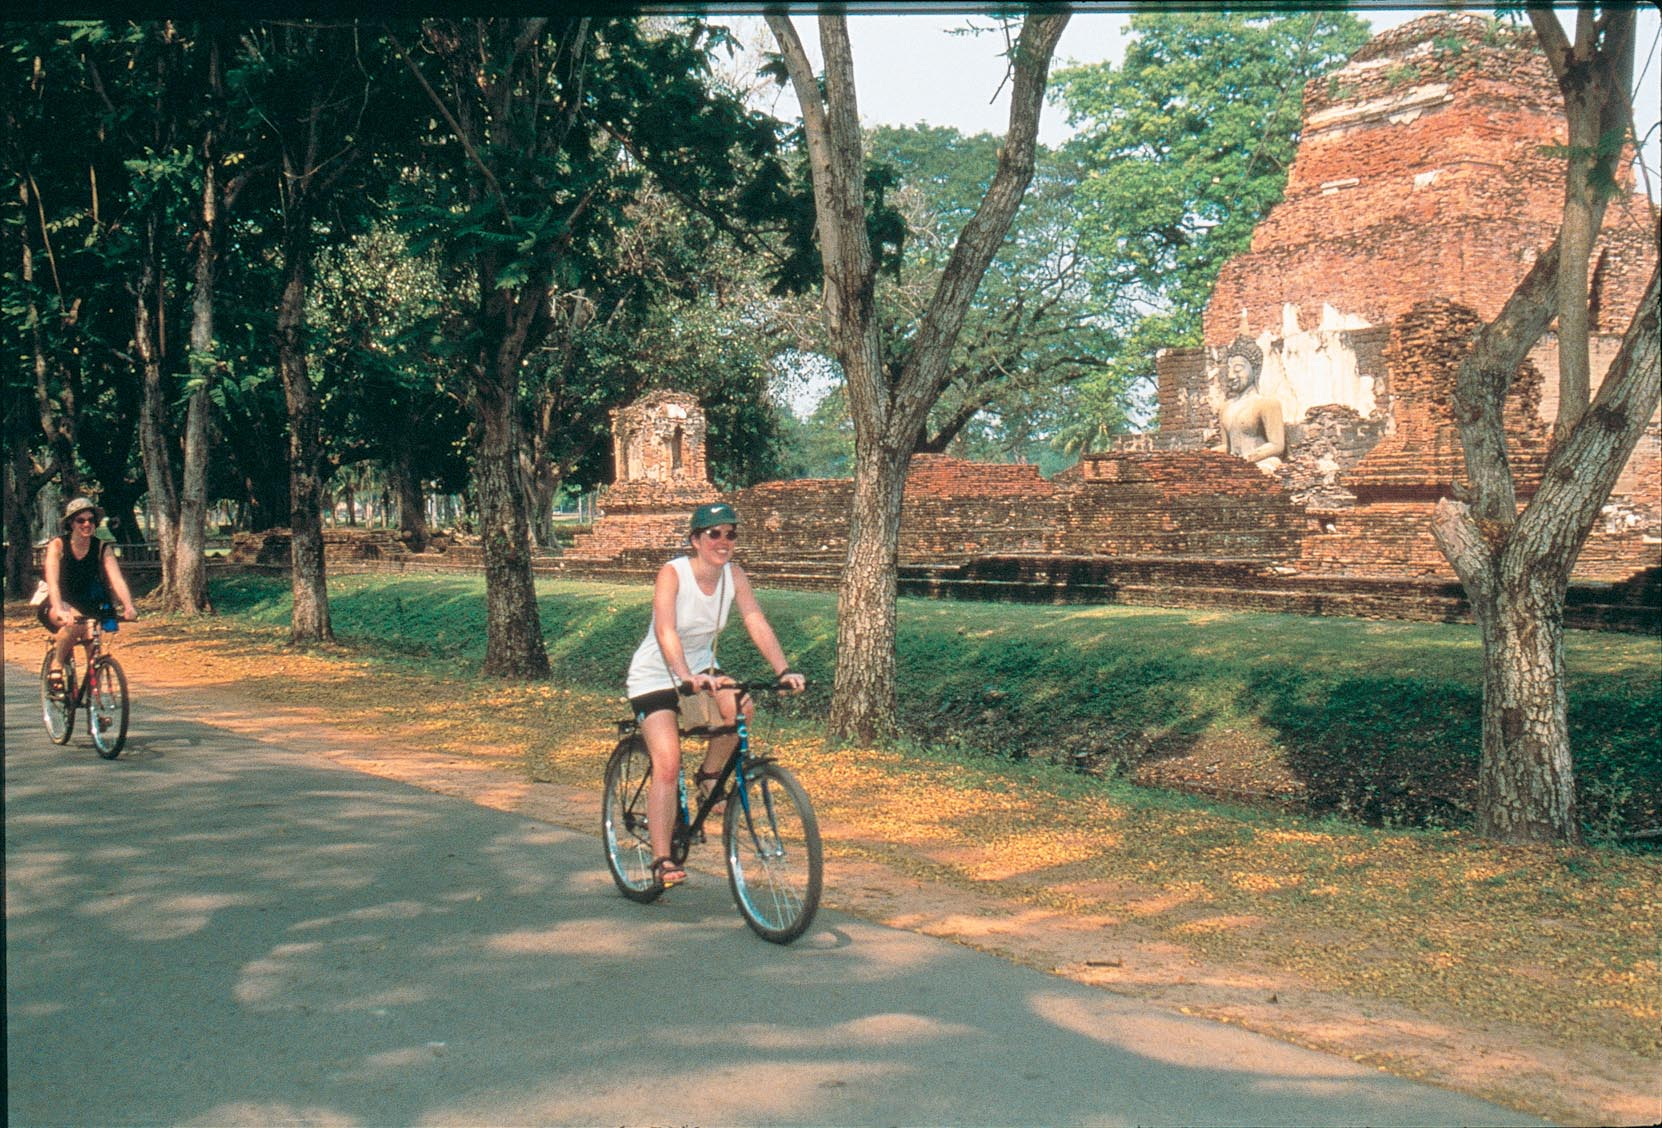 Thailand & Laos Discovery 1